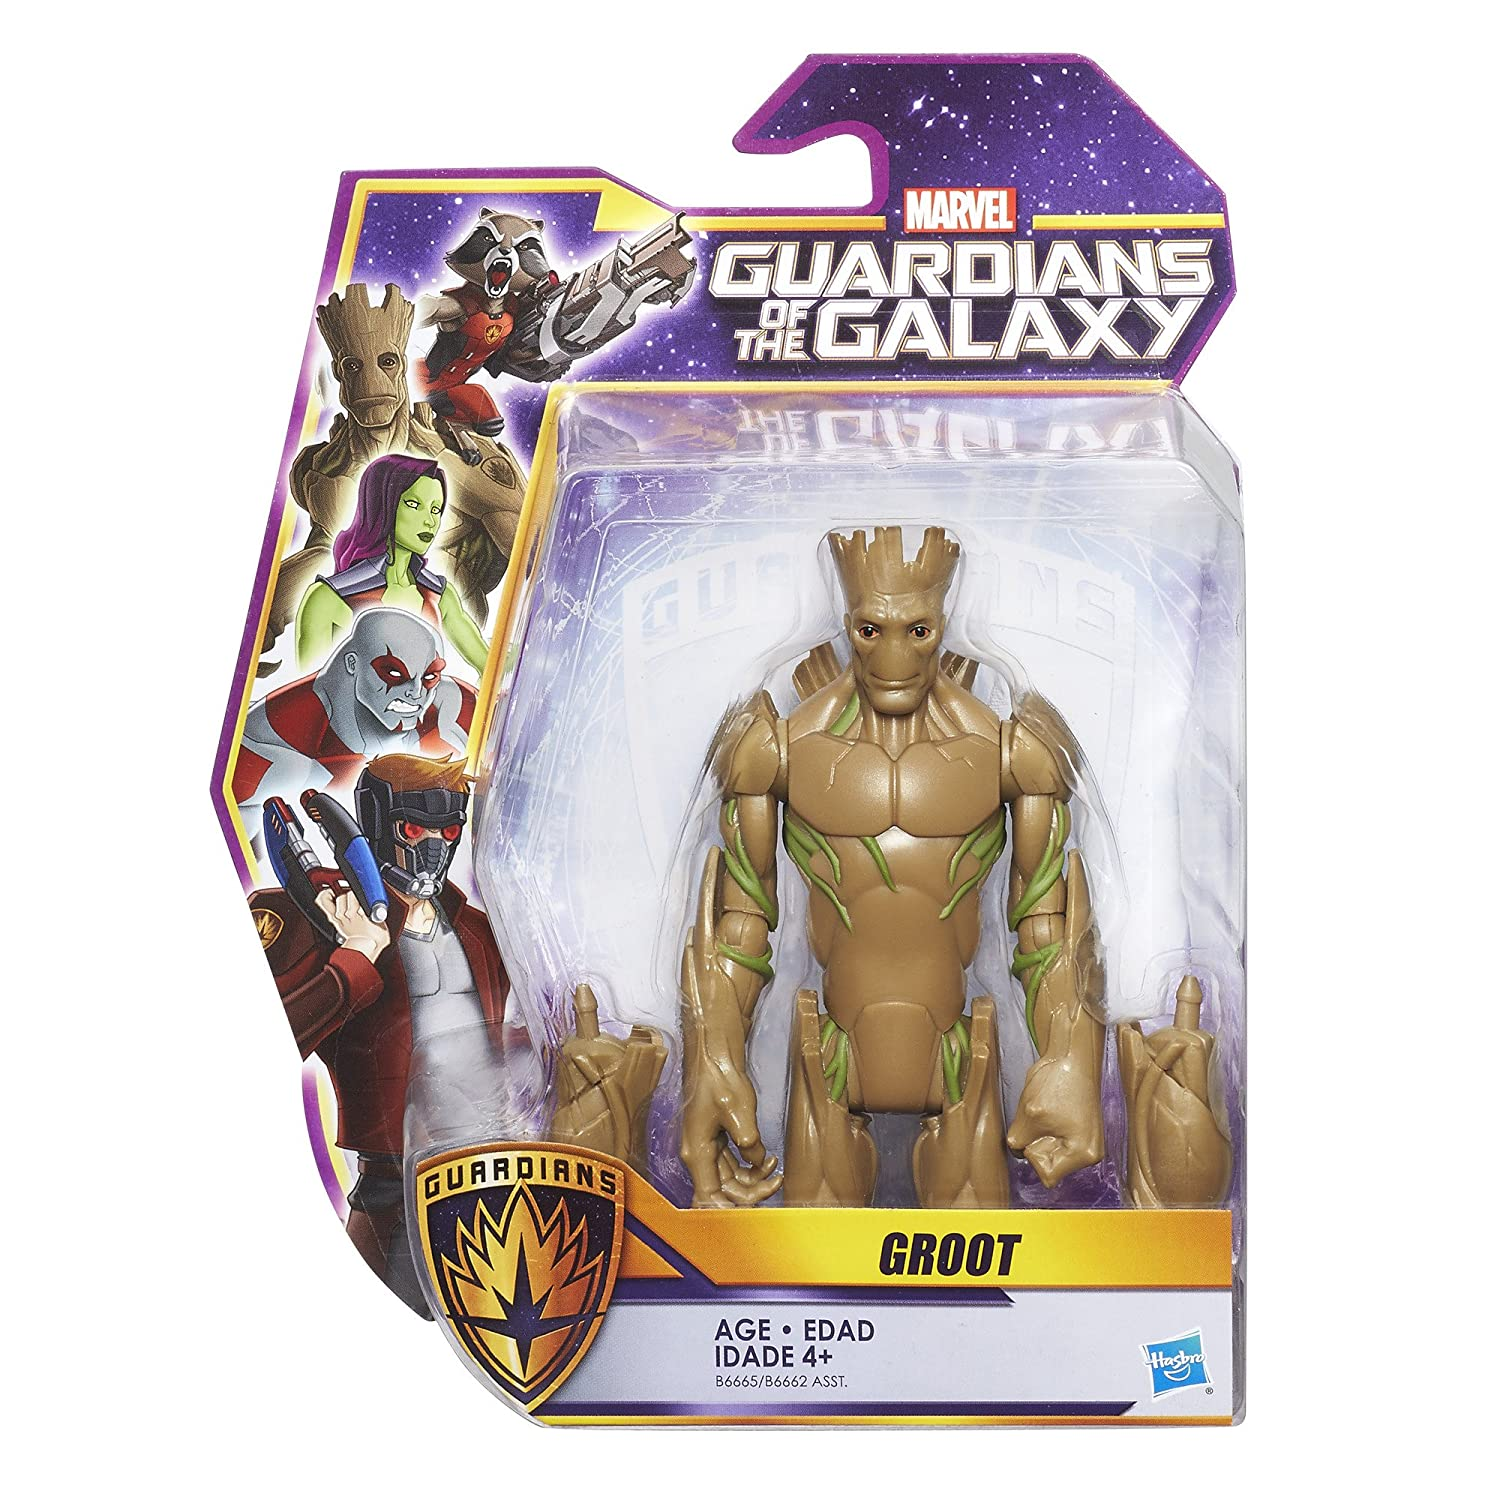 Marvel Guardians of the Galaxy 6-inch Groot Hasbro B6665AS0